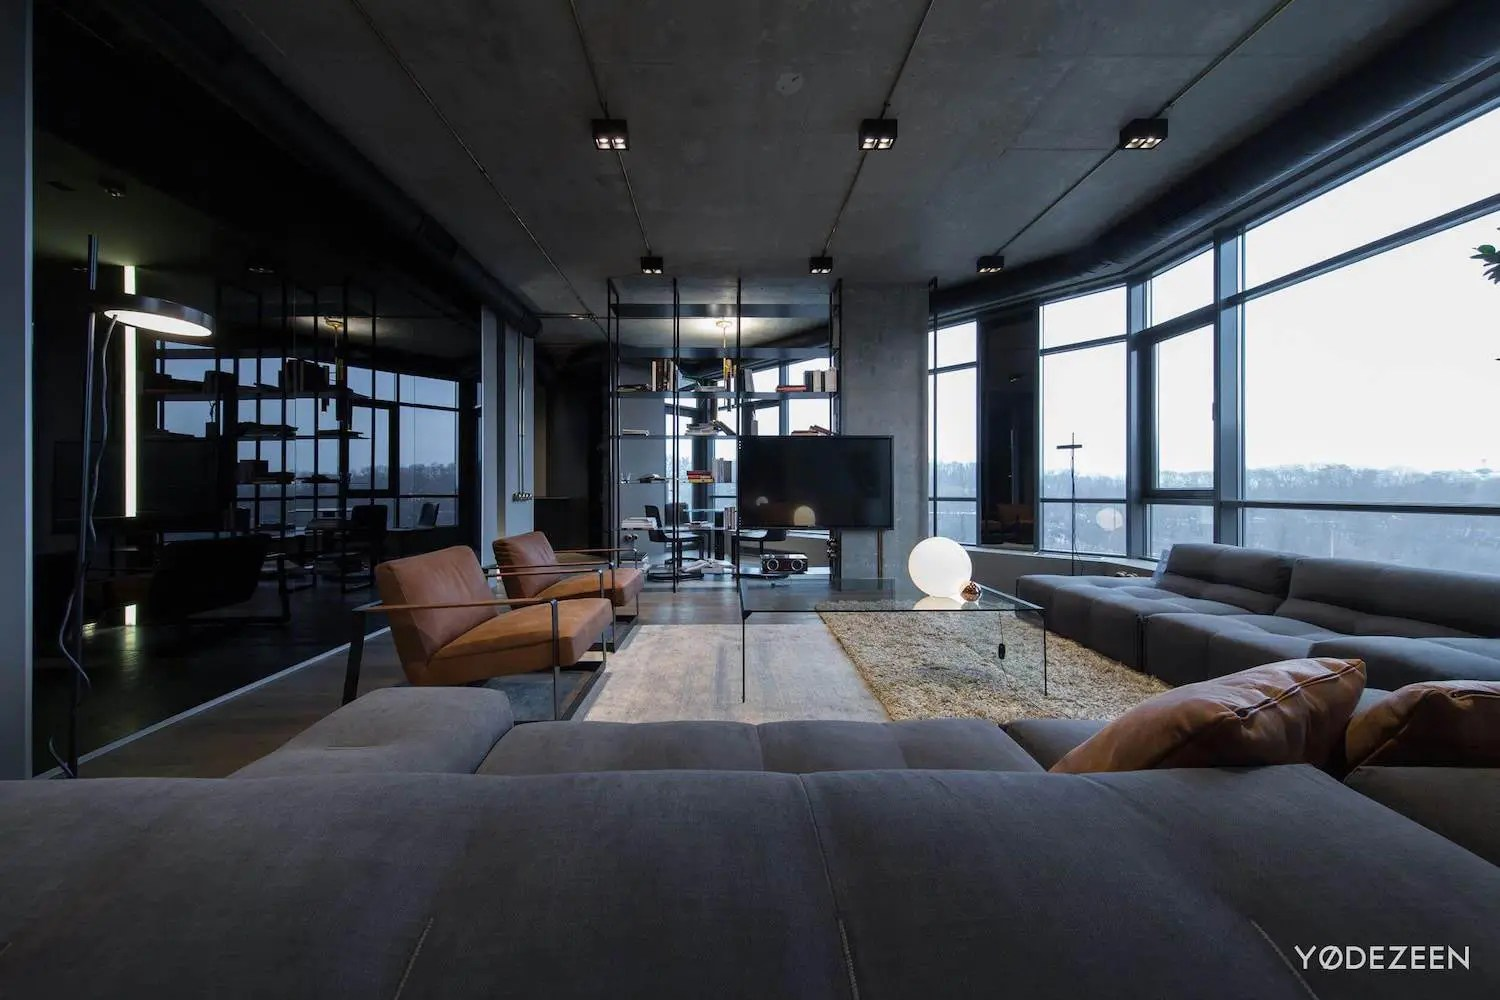 Apartment In Concrete, Dark Surfaces And Dramatic Lighting